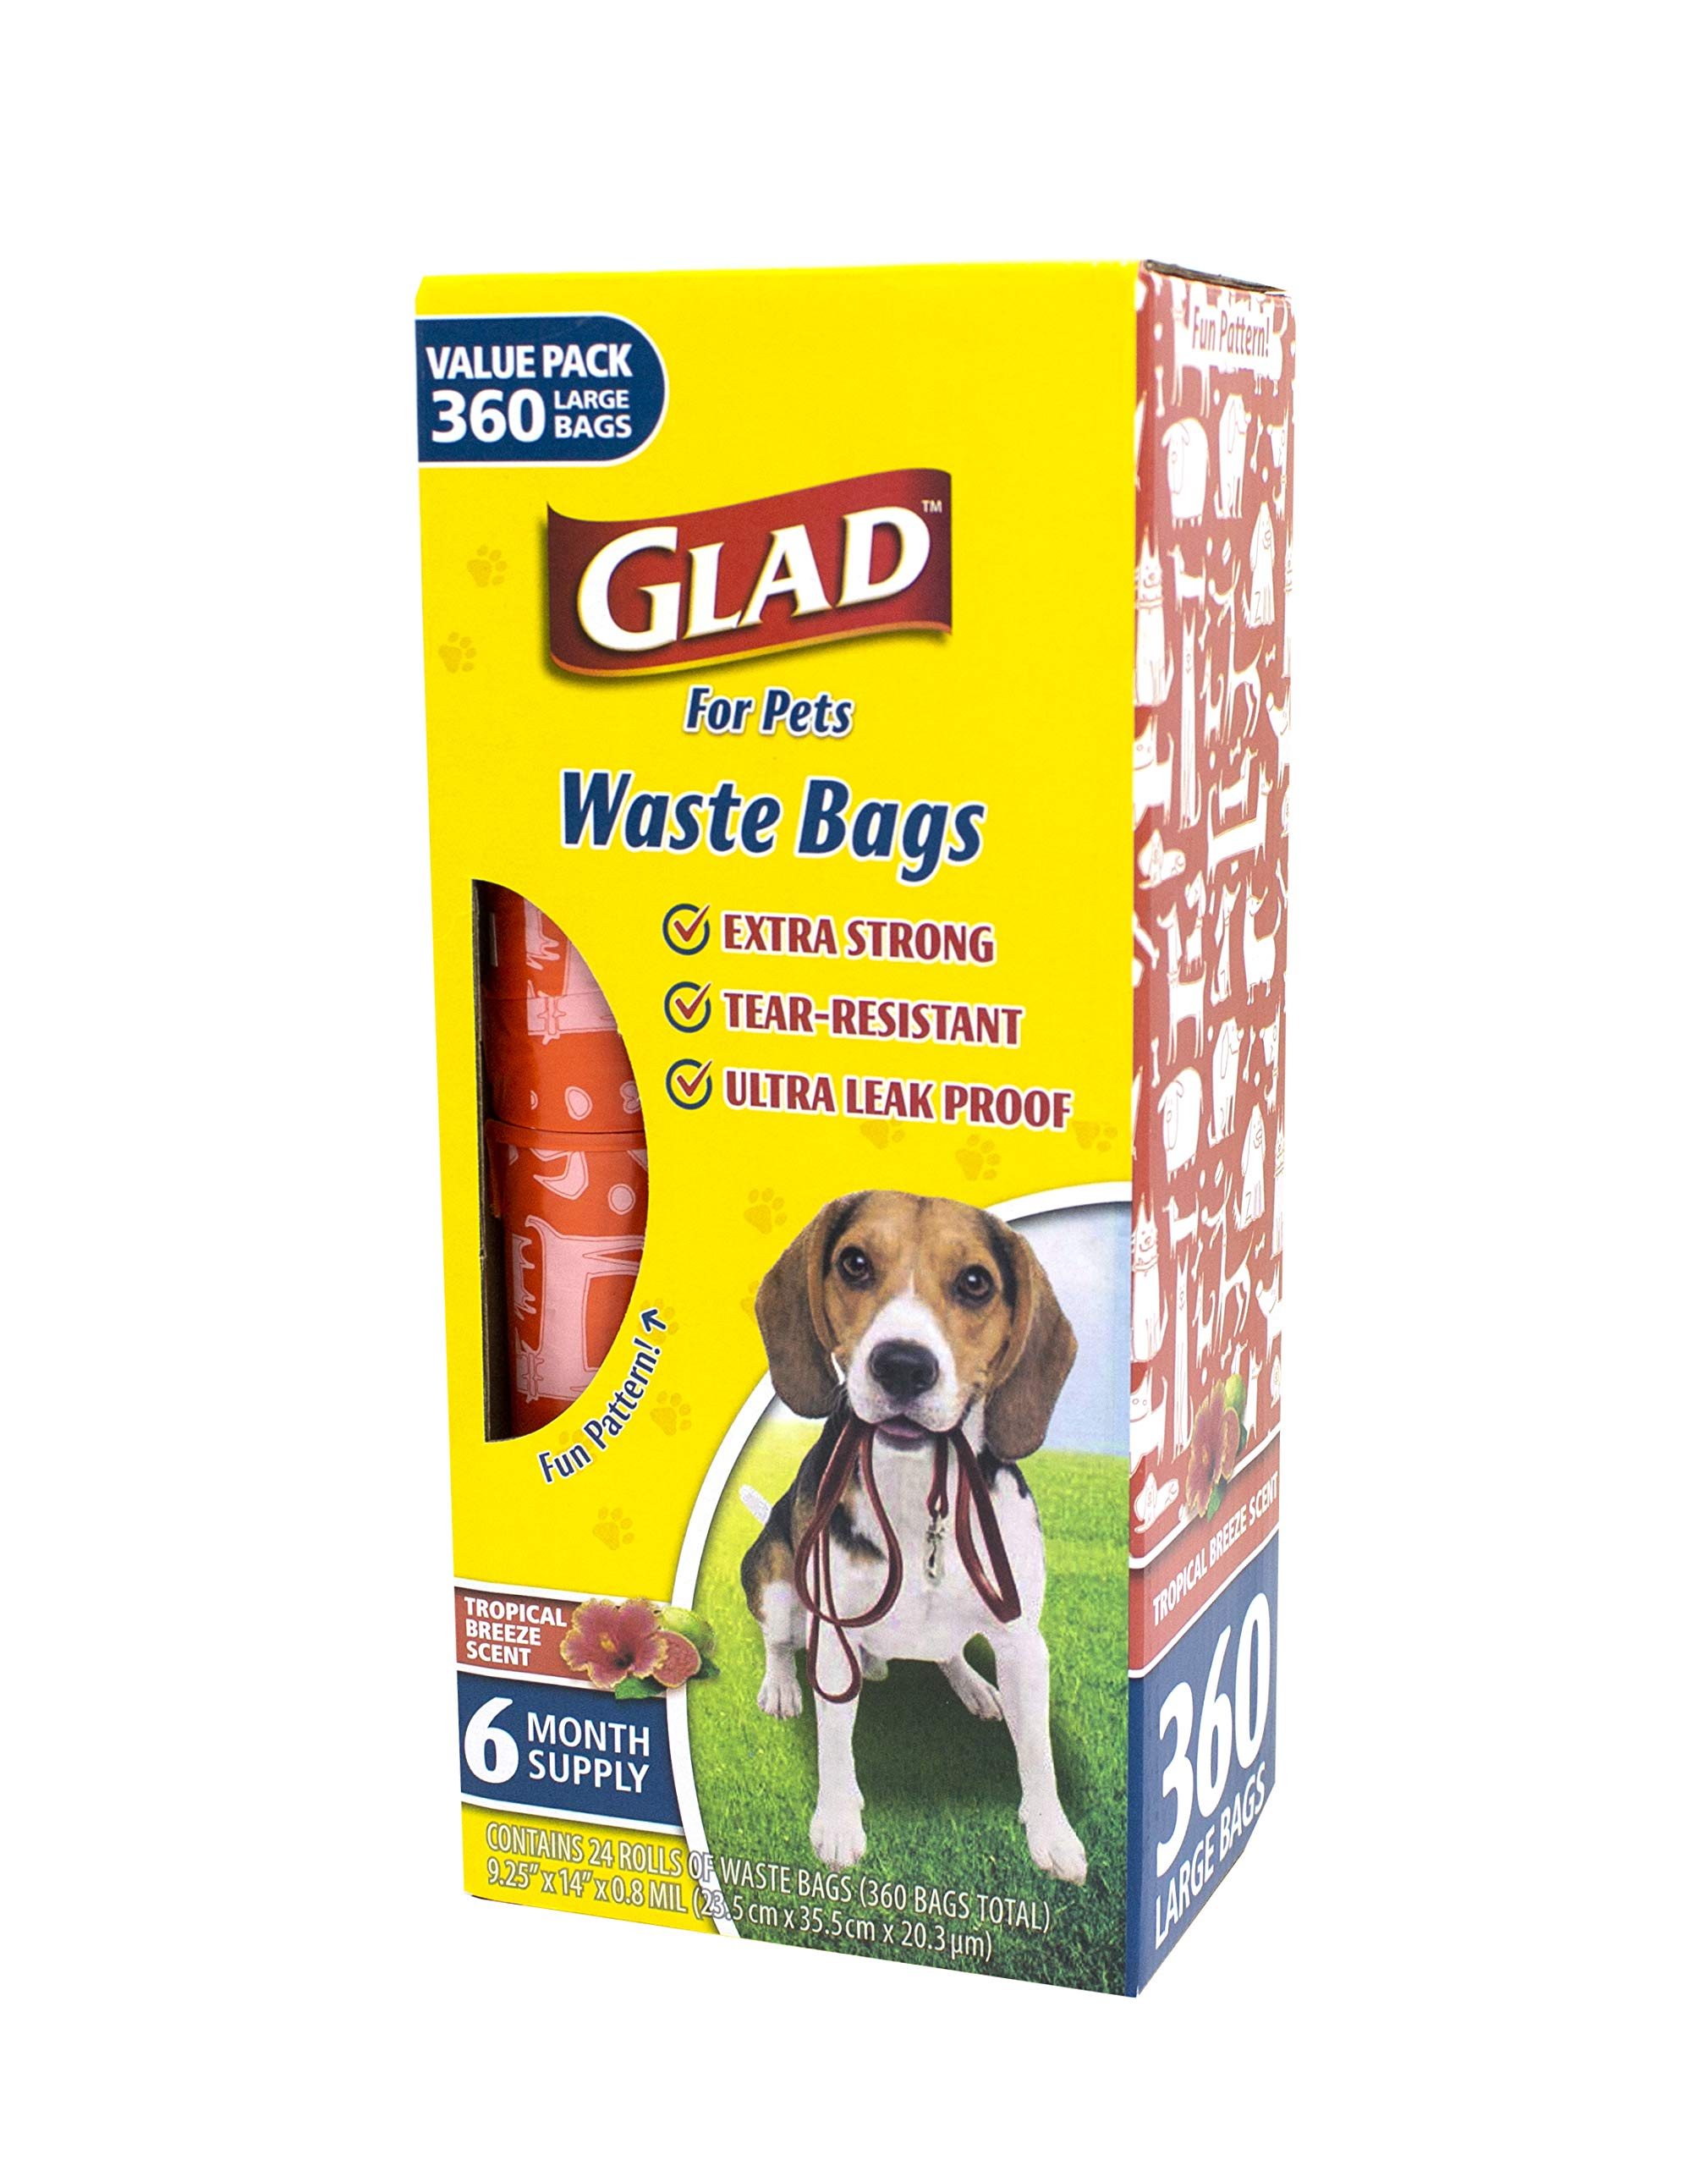 Glad for Pets Large Dog Waste Bags Value Pack | Scented, Tear-Resistant Poop Bags for Dog Cleanup | 24 Rolls, 360Count by Glad for Pets